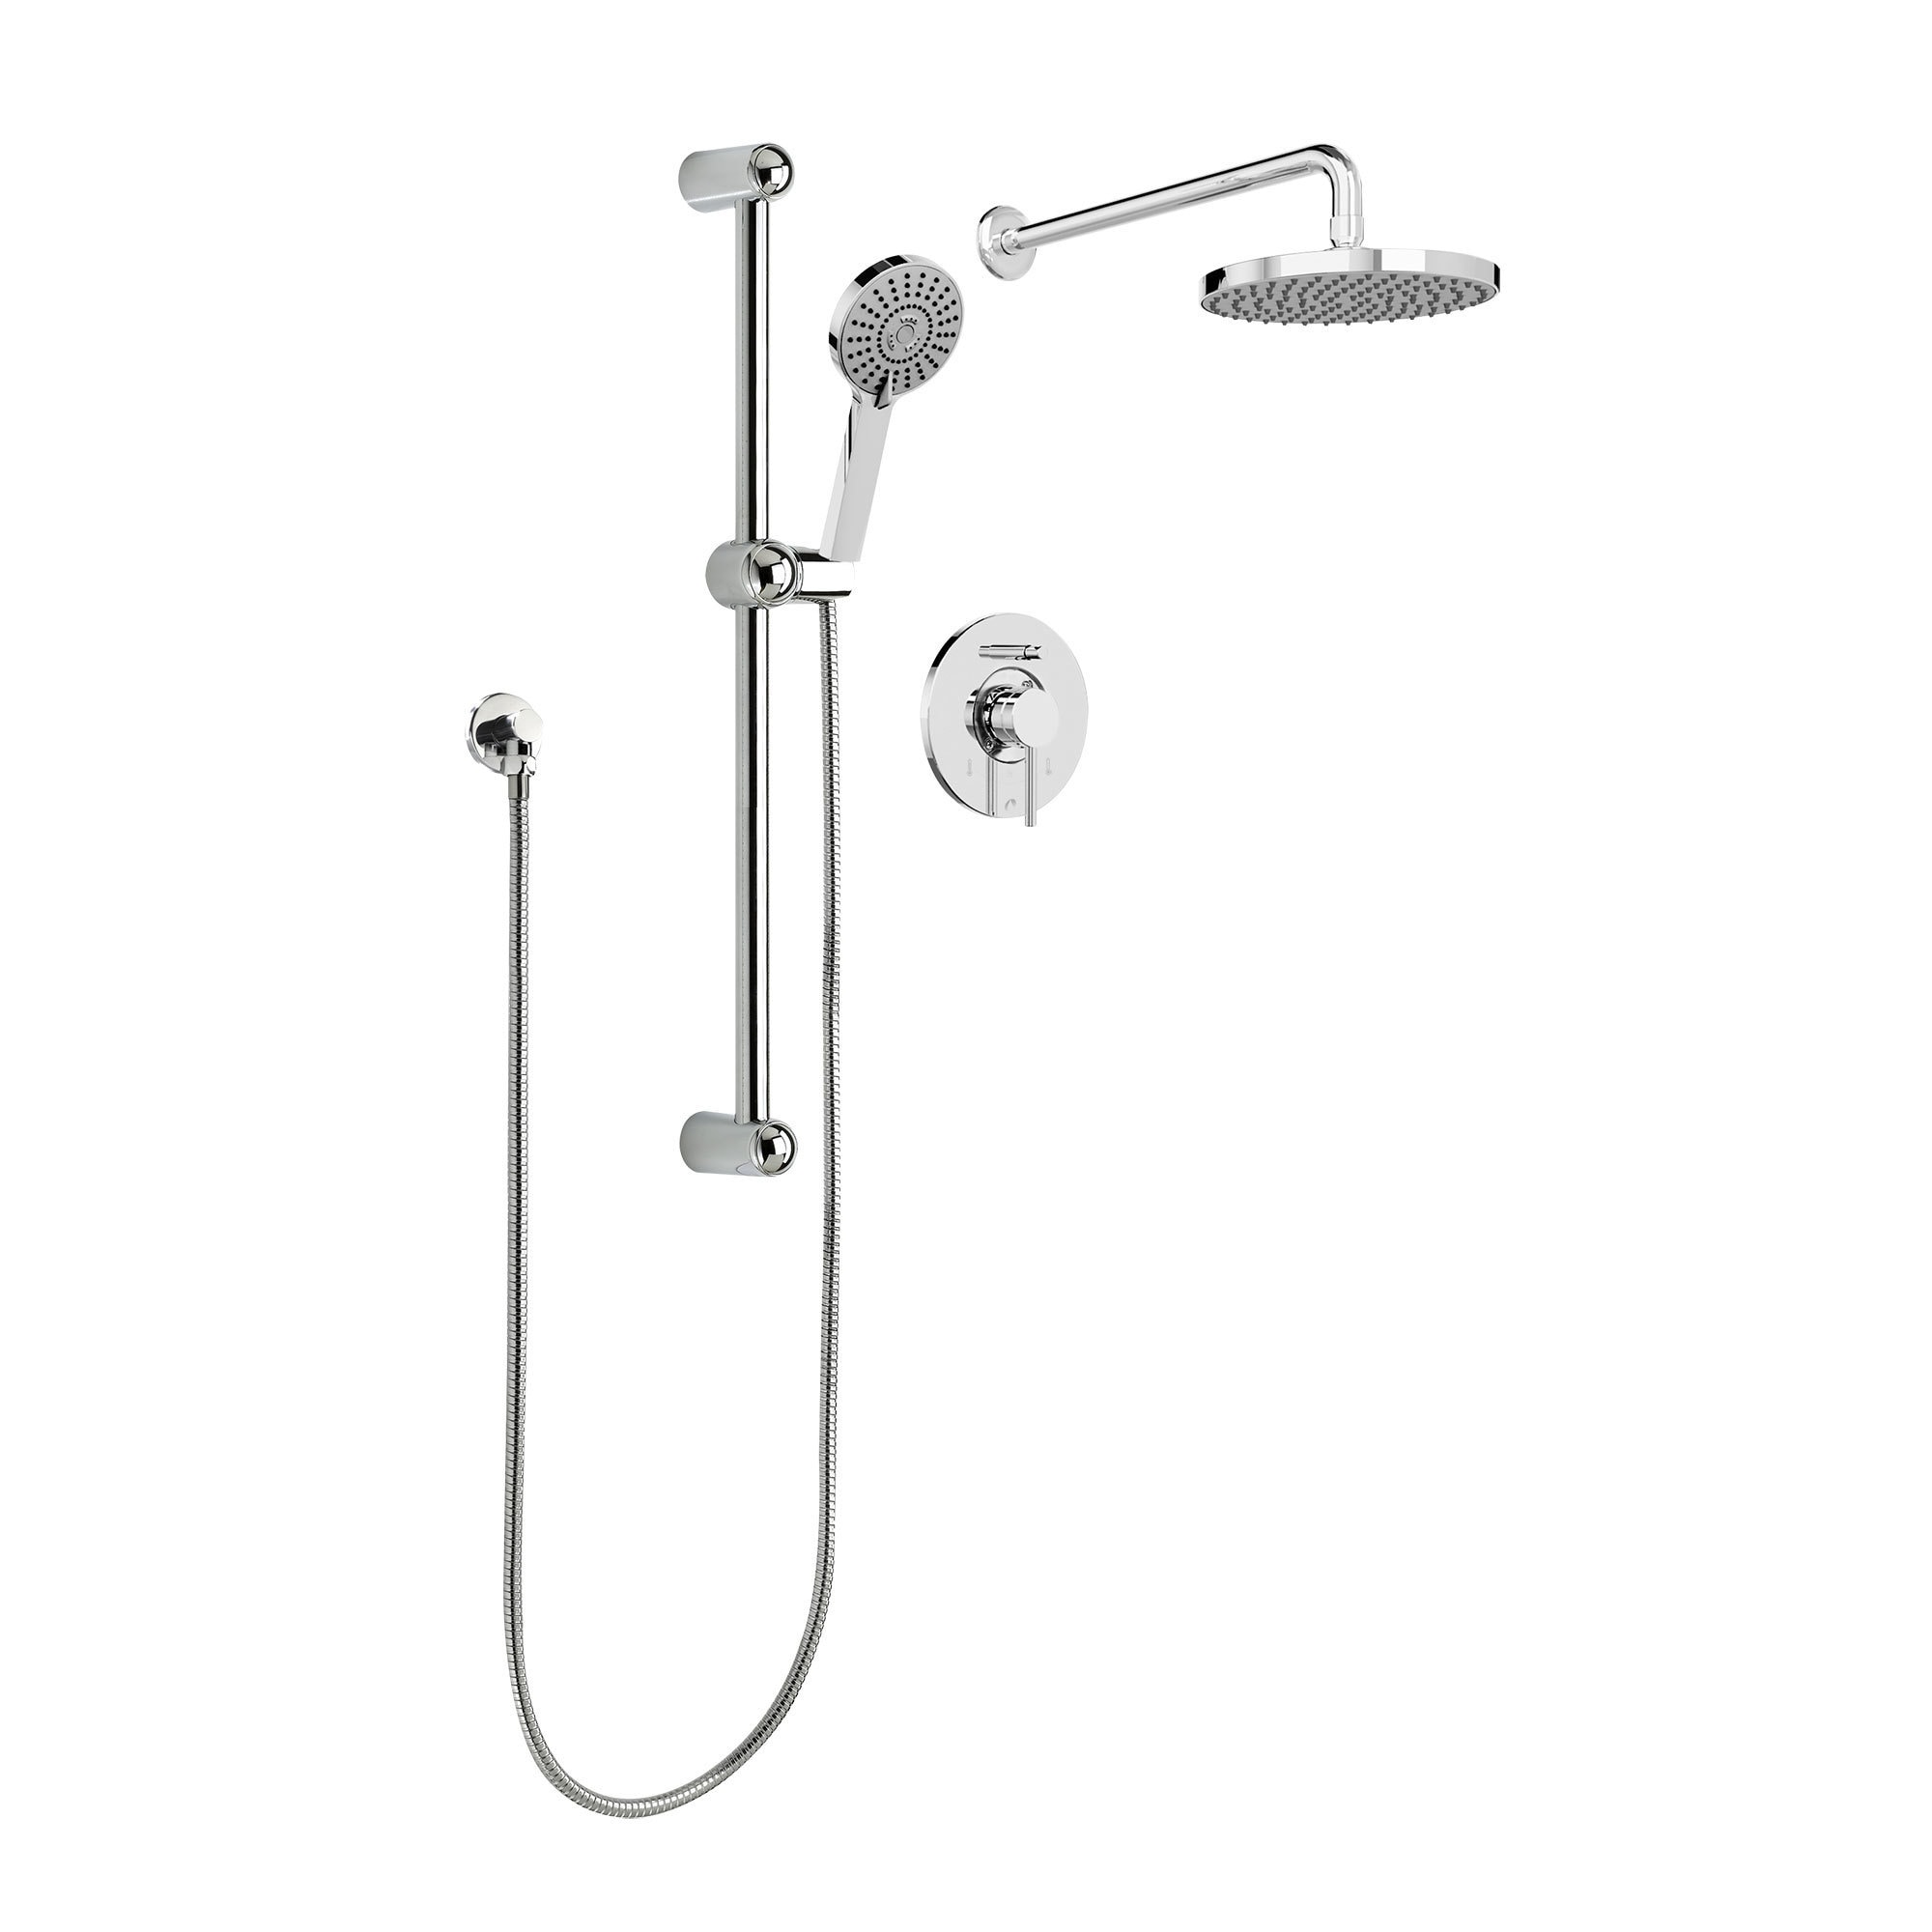 Belanger Kit Del130ccp Delphi Pressure Balanced Shower System Polished Chrome